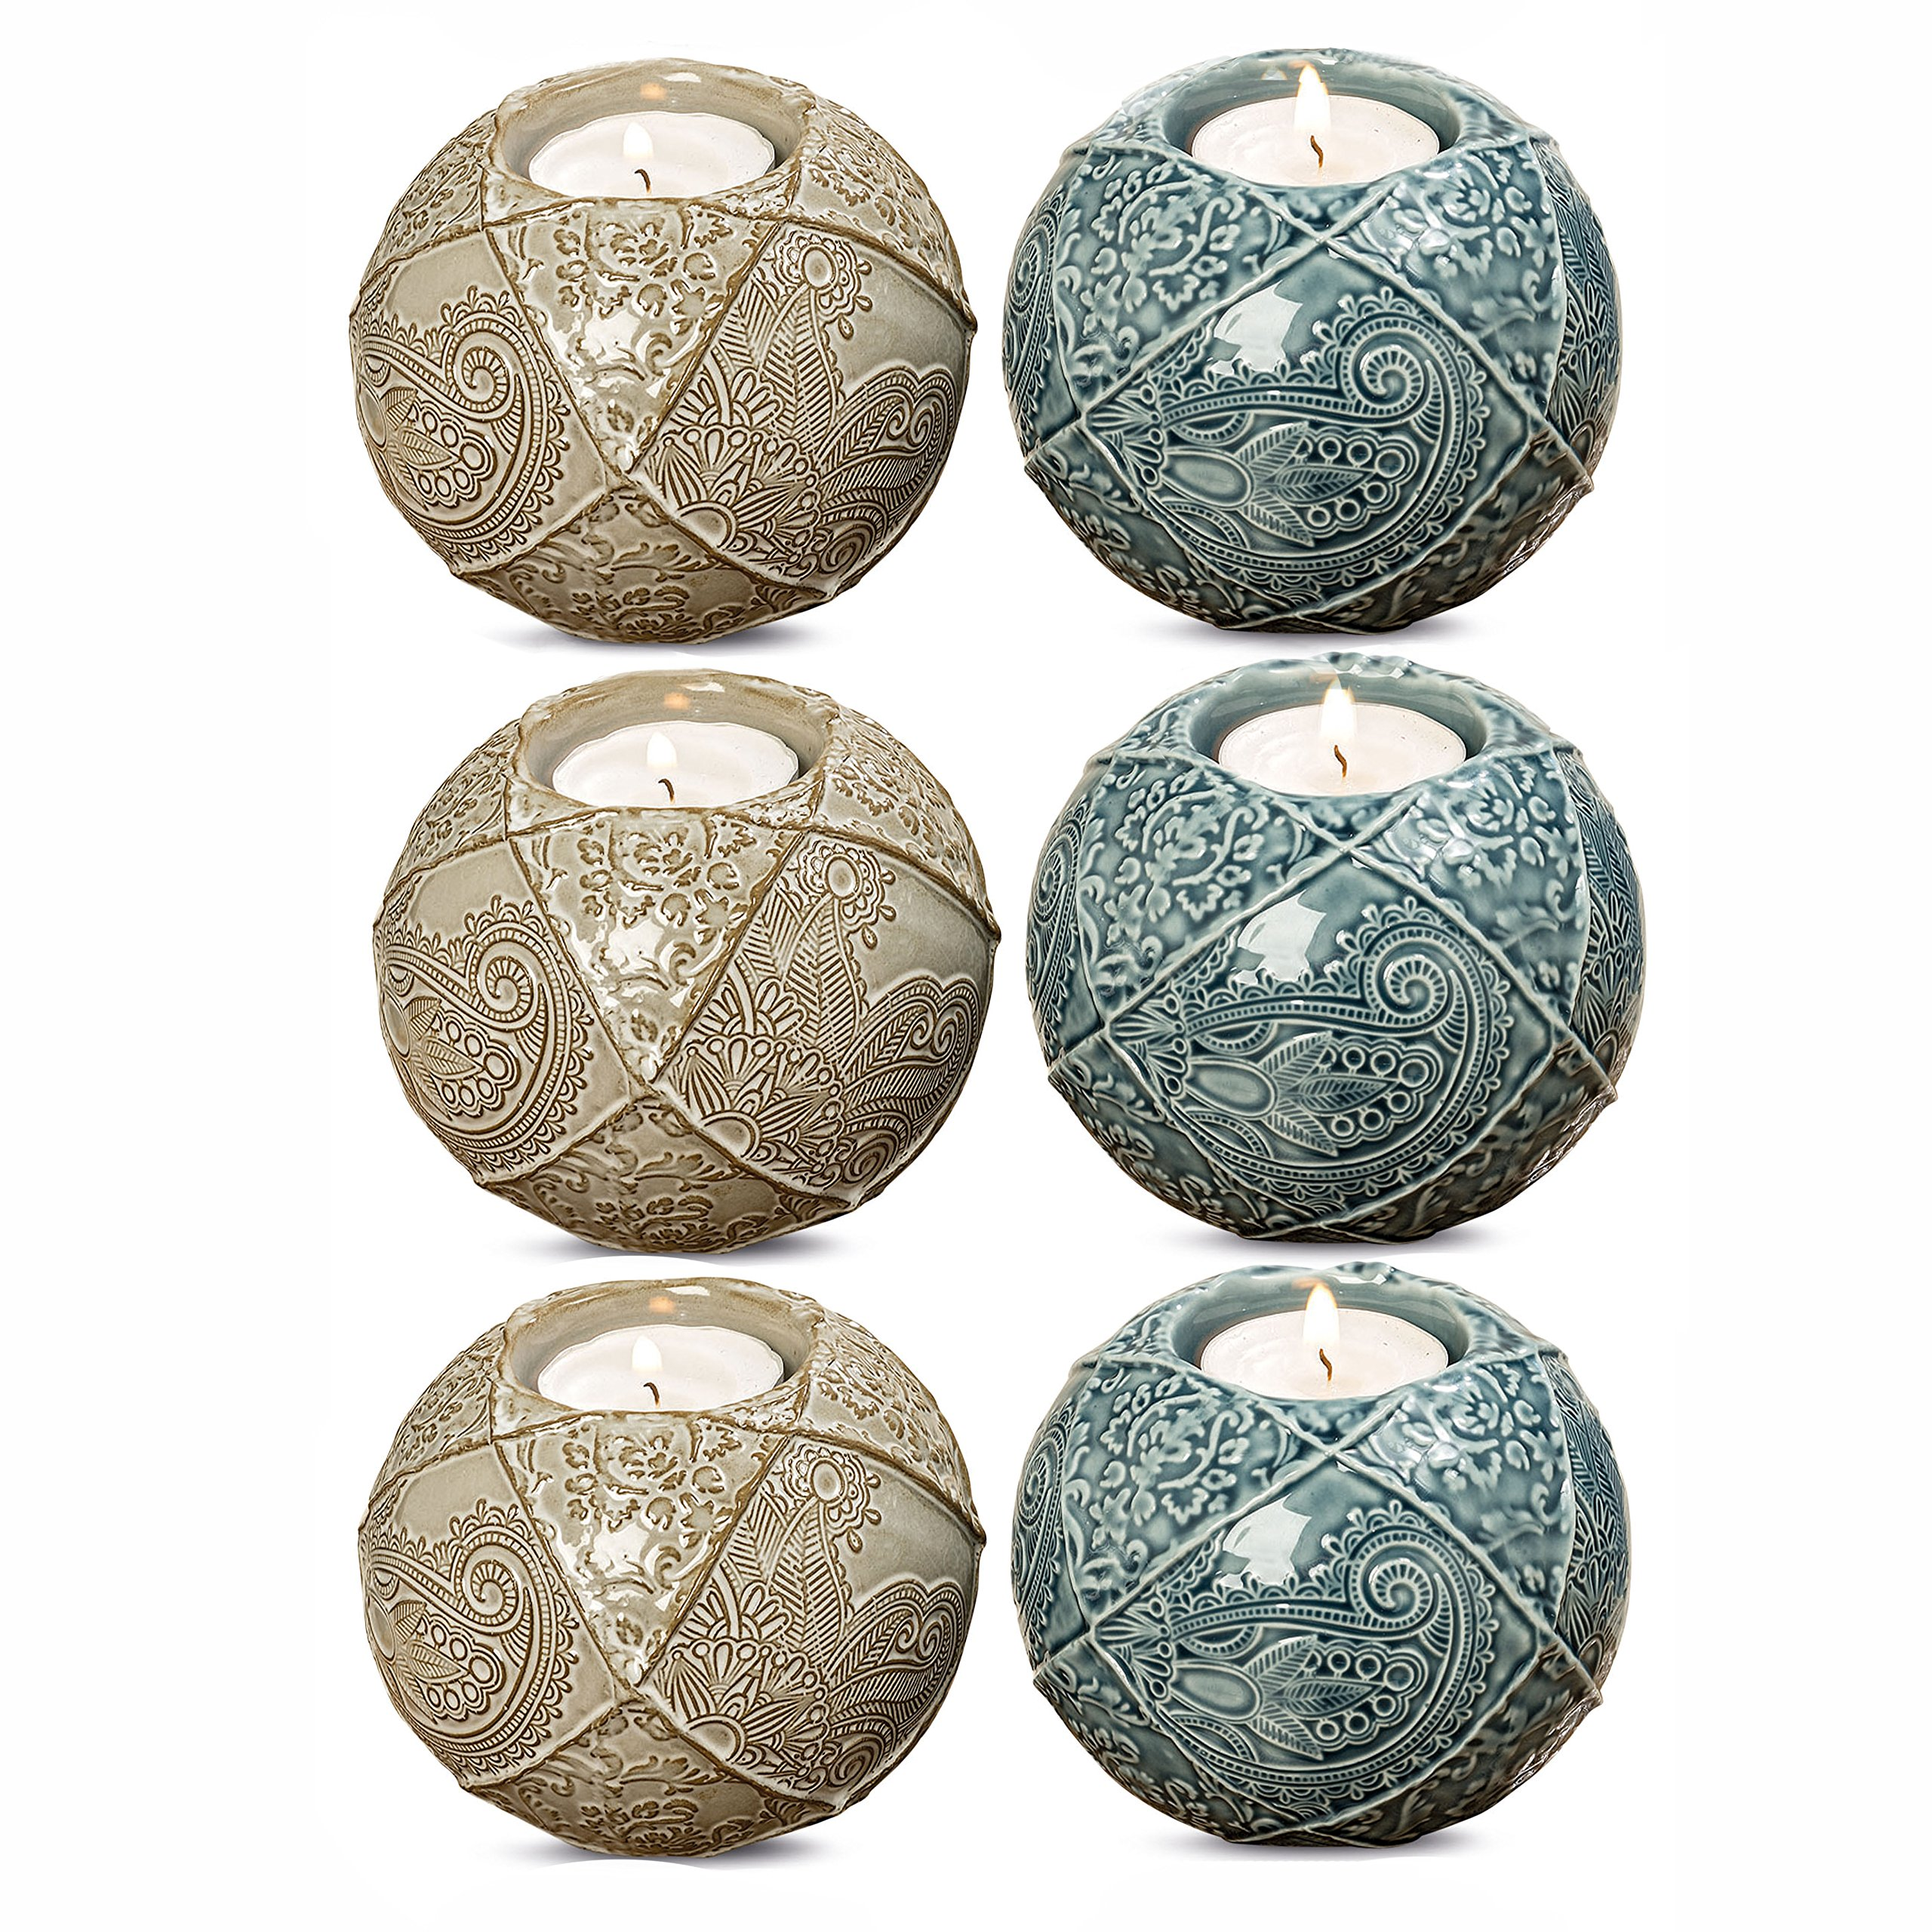 WHW Whole House Worlds Naturally Modern Paisley Tea Light Candle Holders Balls, Set of 6, Color Coordinated Teal and Tan, Porcelain, Intricate Incised Details, 4 Inches Diameter